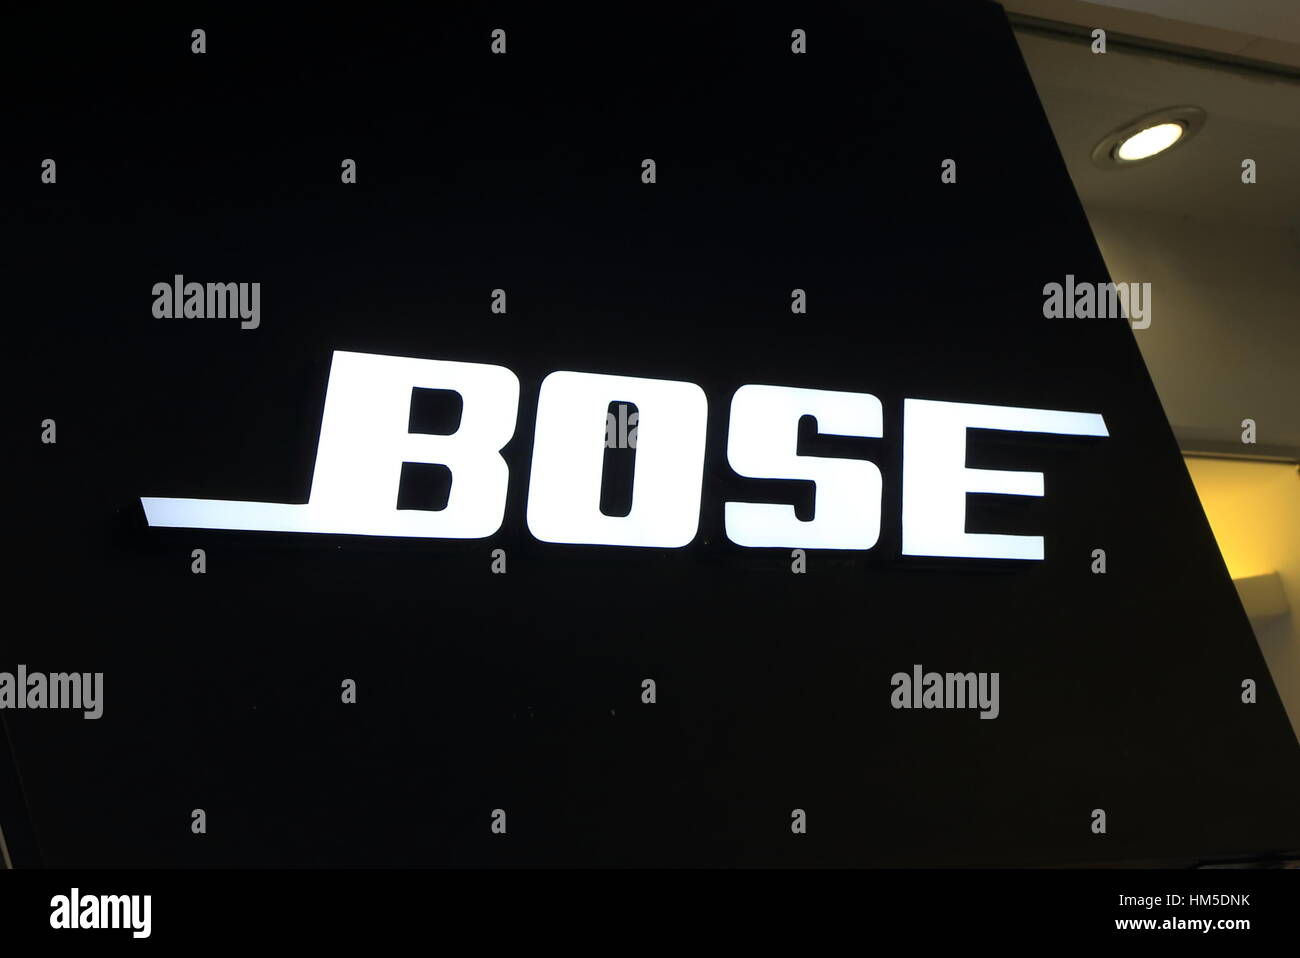 Bose. Bose is an American privately held corporation based in Massachusetts designing and imports audio equipment. - Stock Image